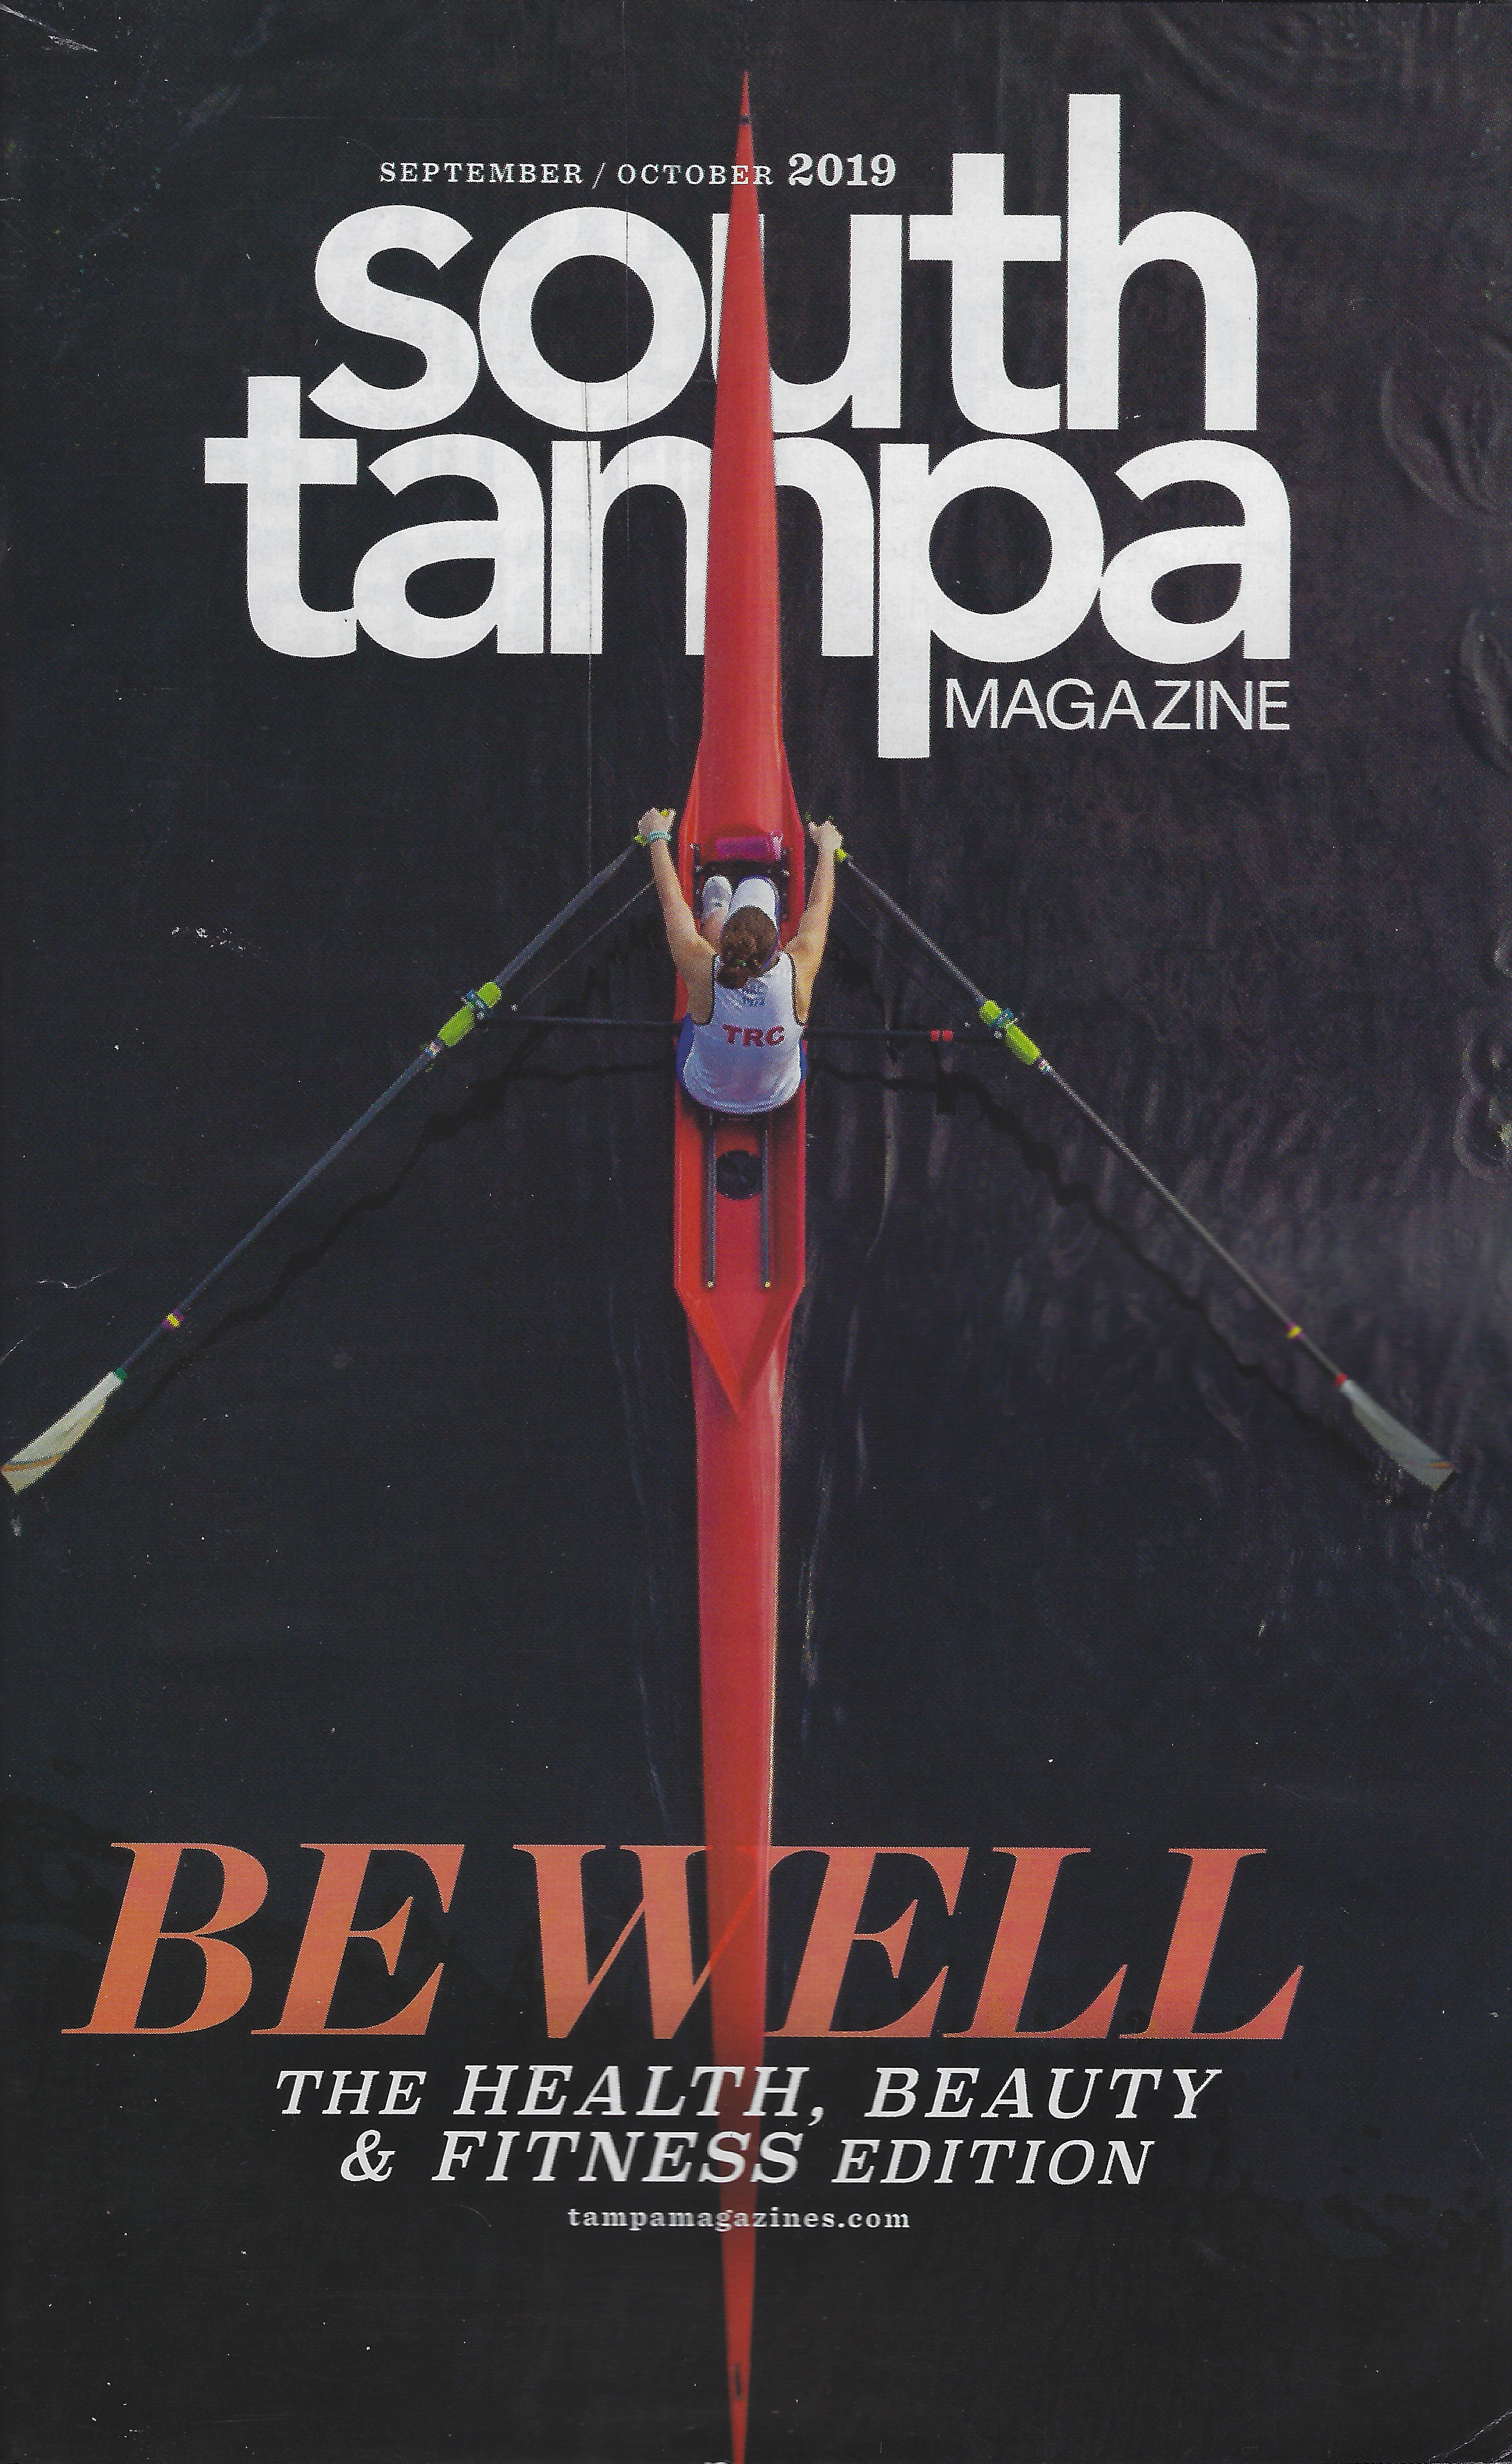 TRC on cover of South Tampa Magazine September/October 2019, 7/27/2019 7:00:00 AM